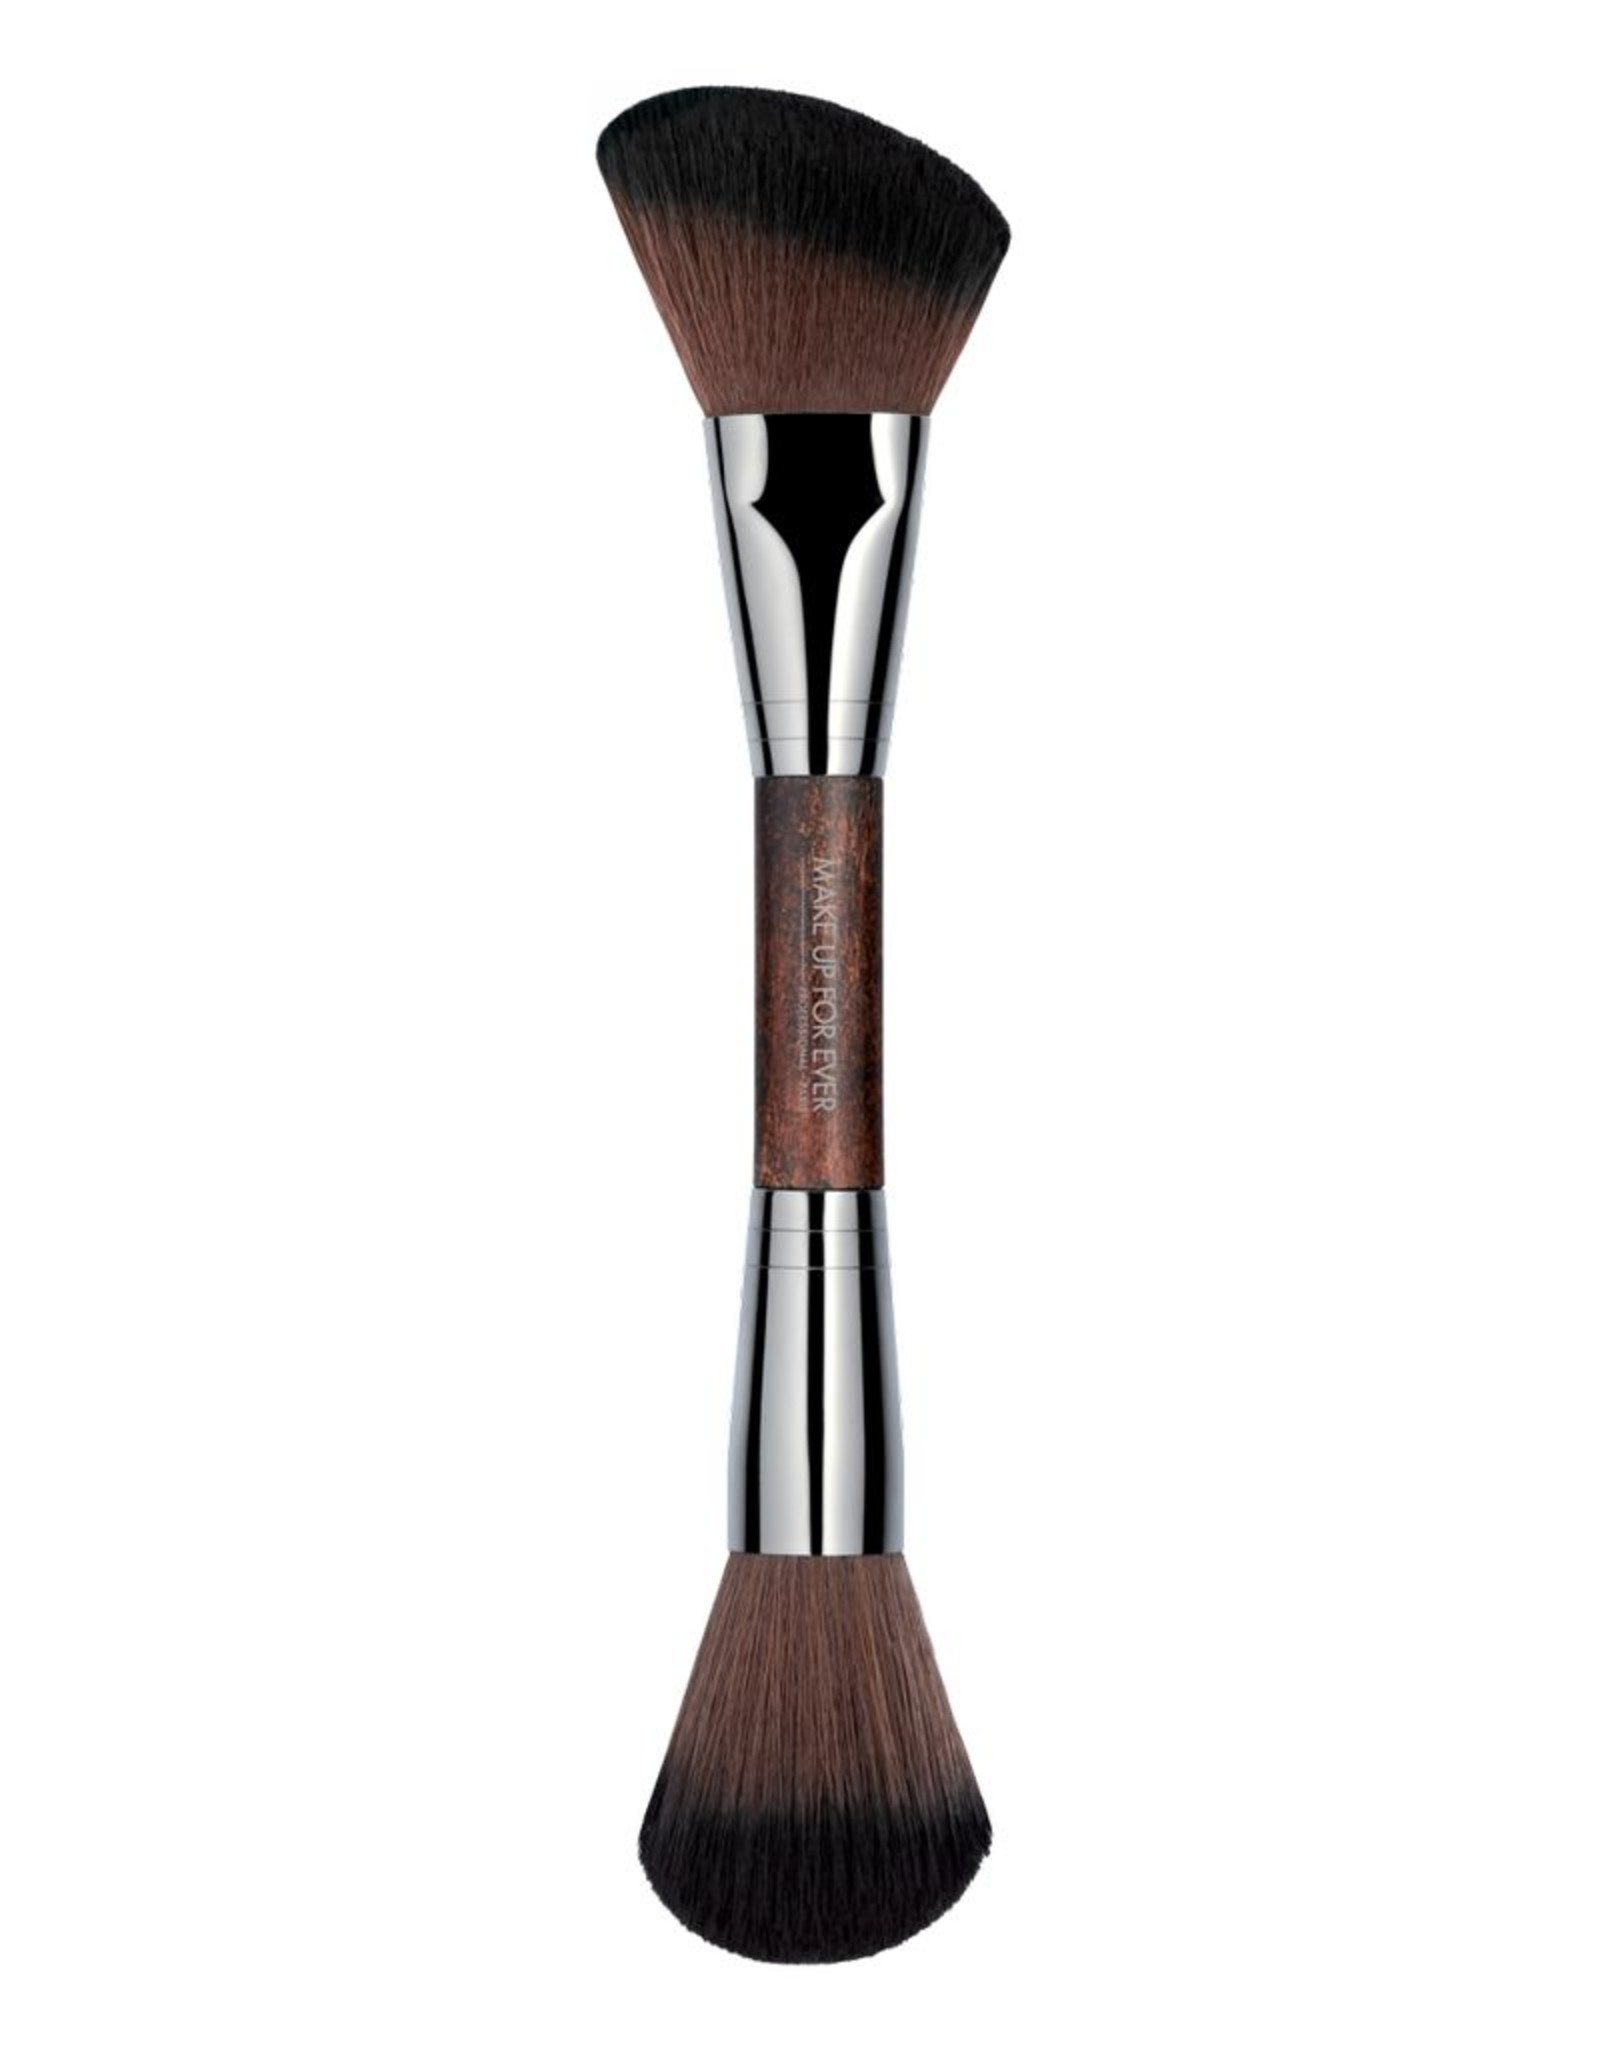 MUFE DOUBLE-ENDED SCULPTING BRUSH   - SALES REFS 59158